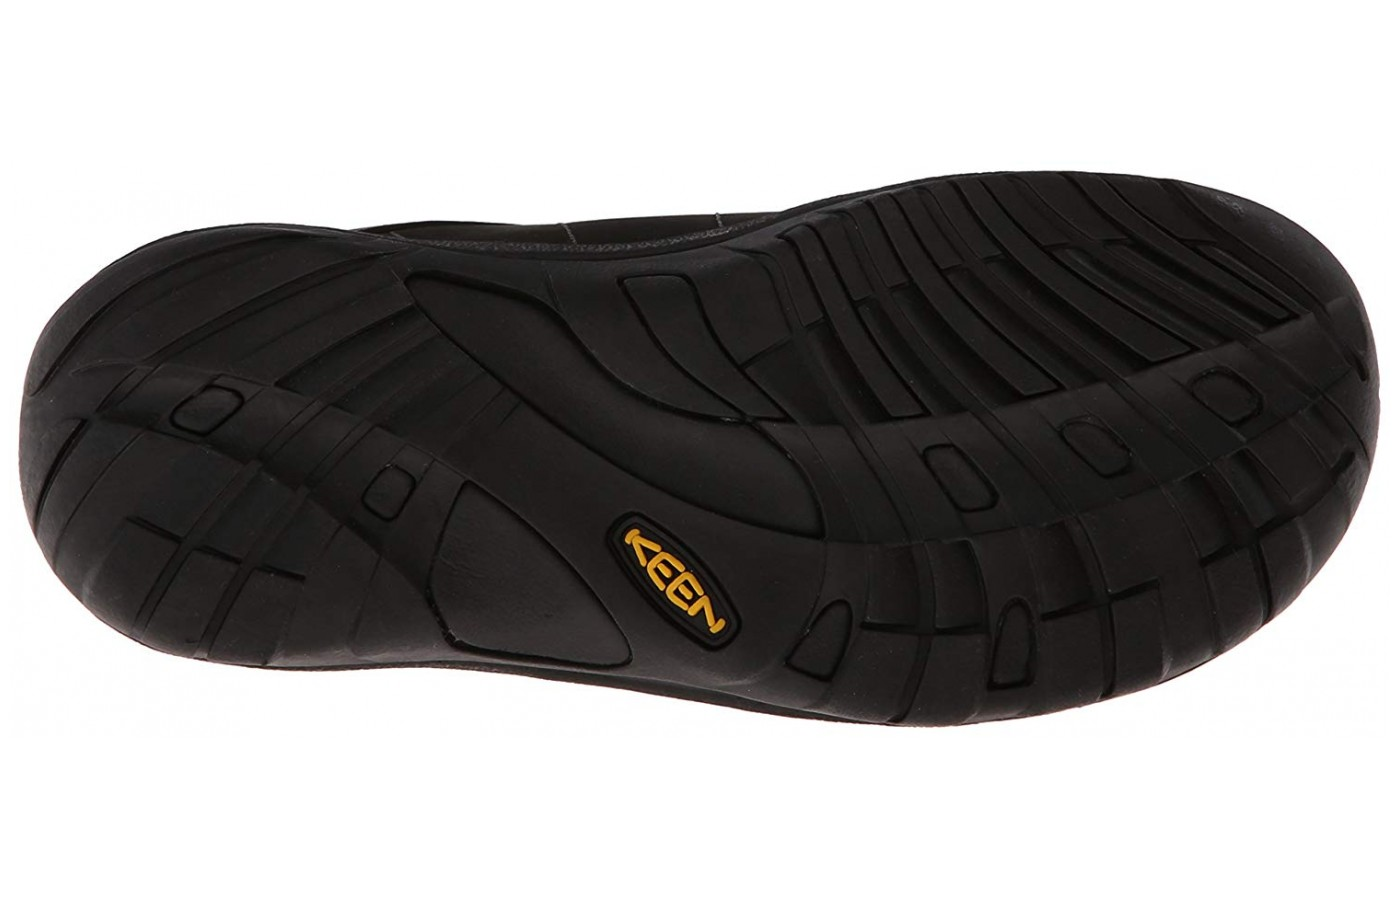 The outsole of the Presidio is made of  carbon non-marking rubber.